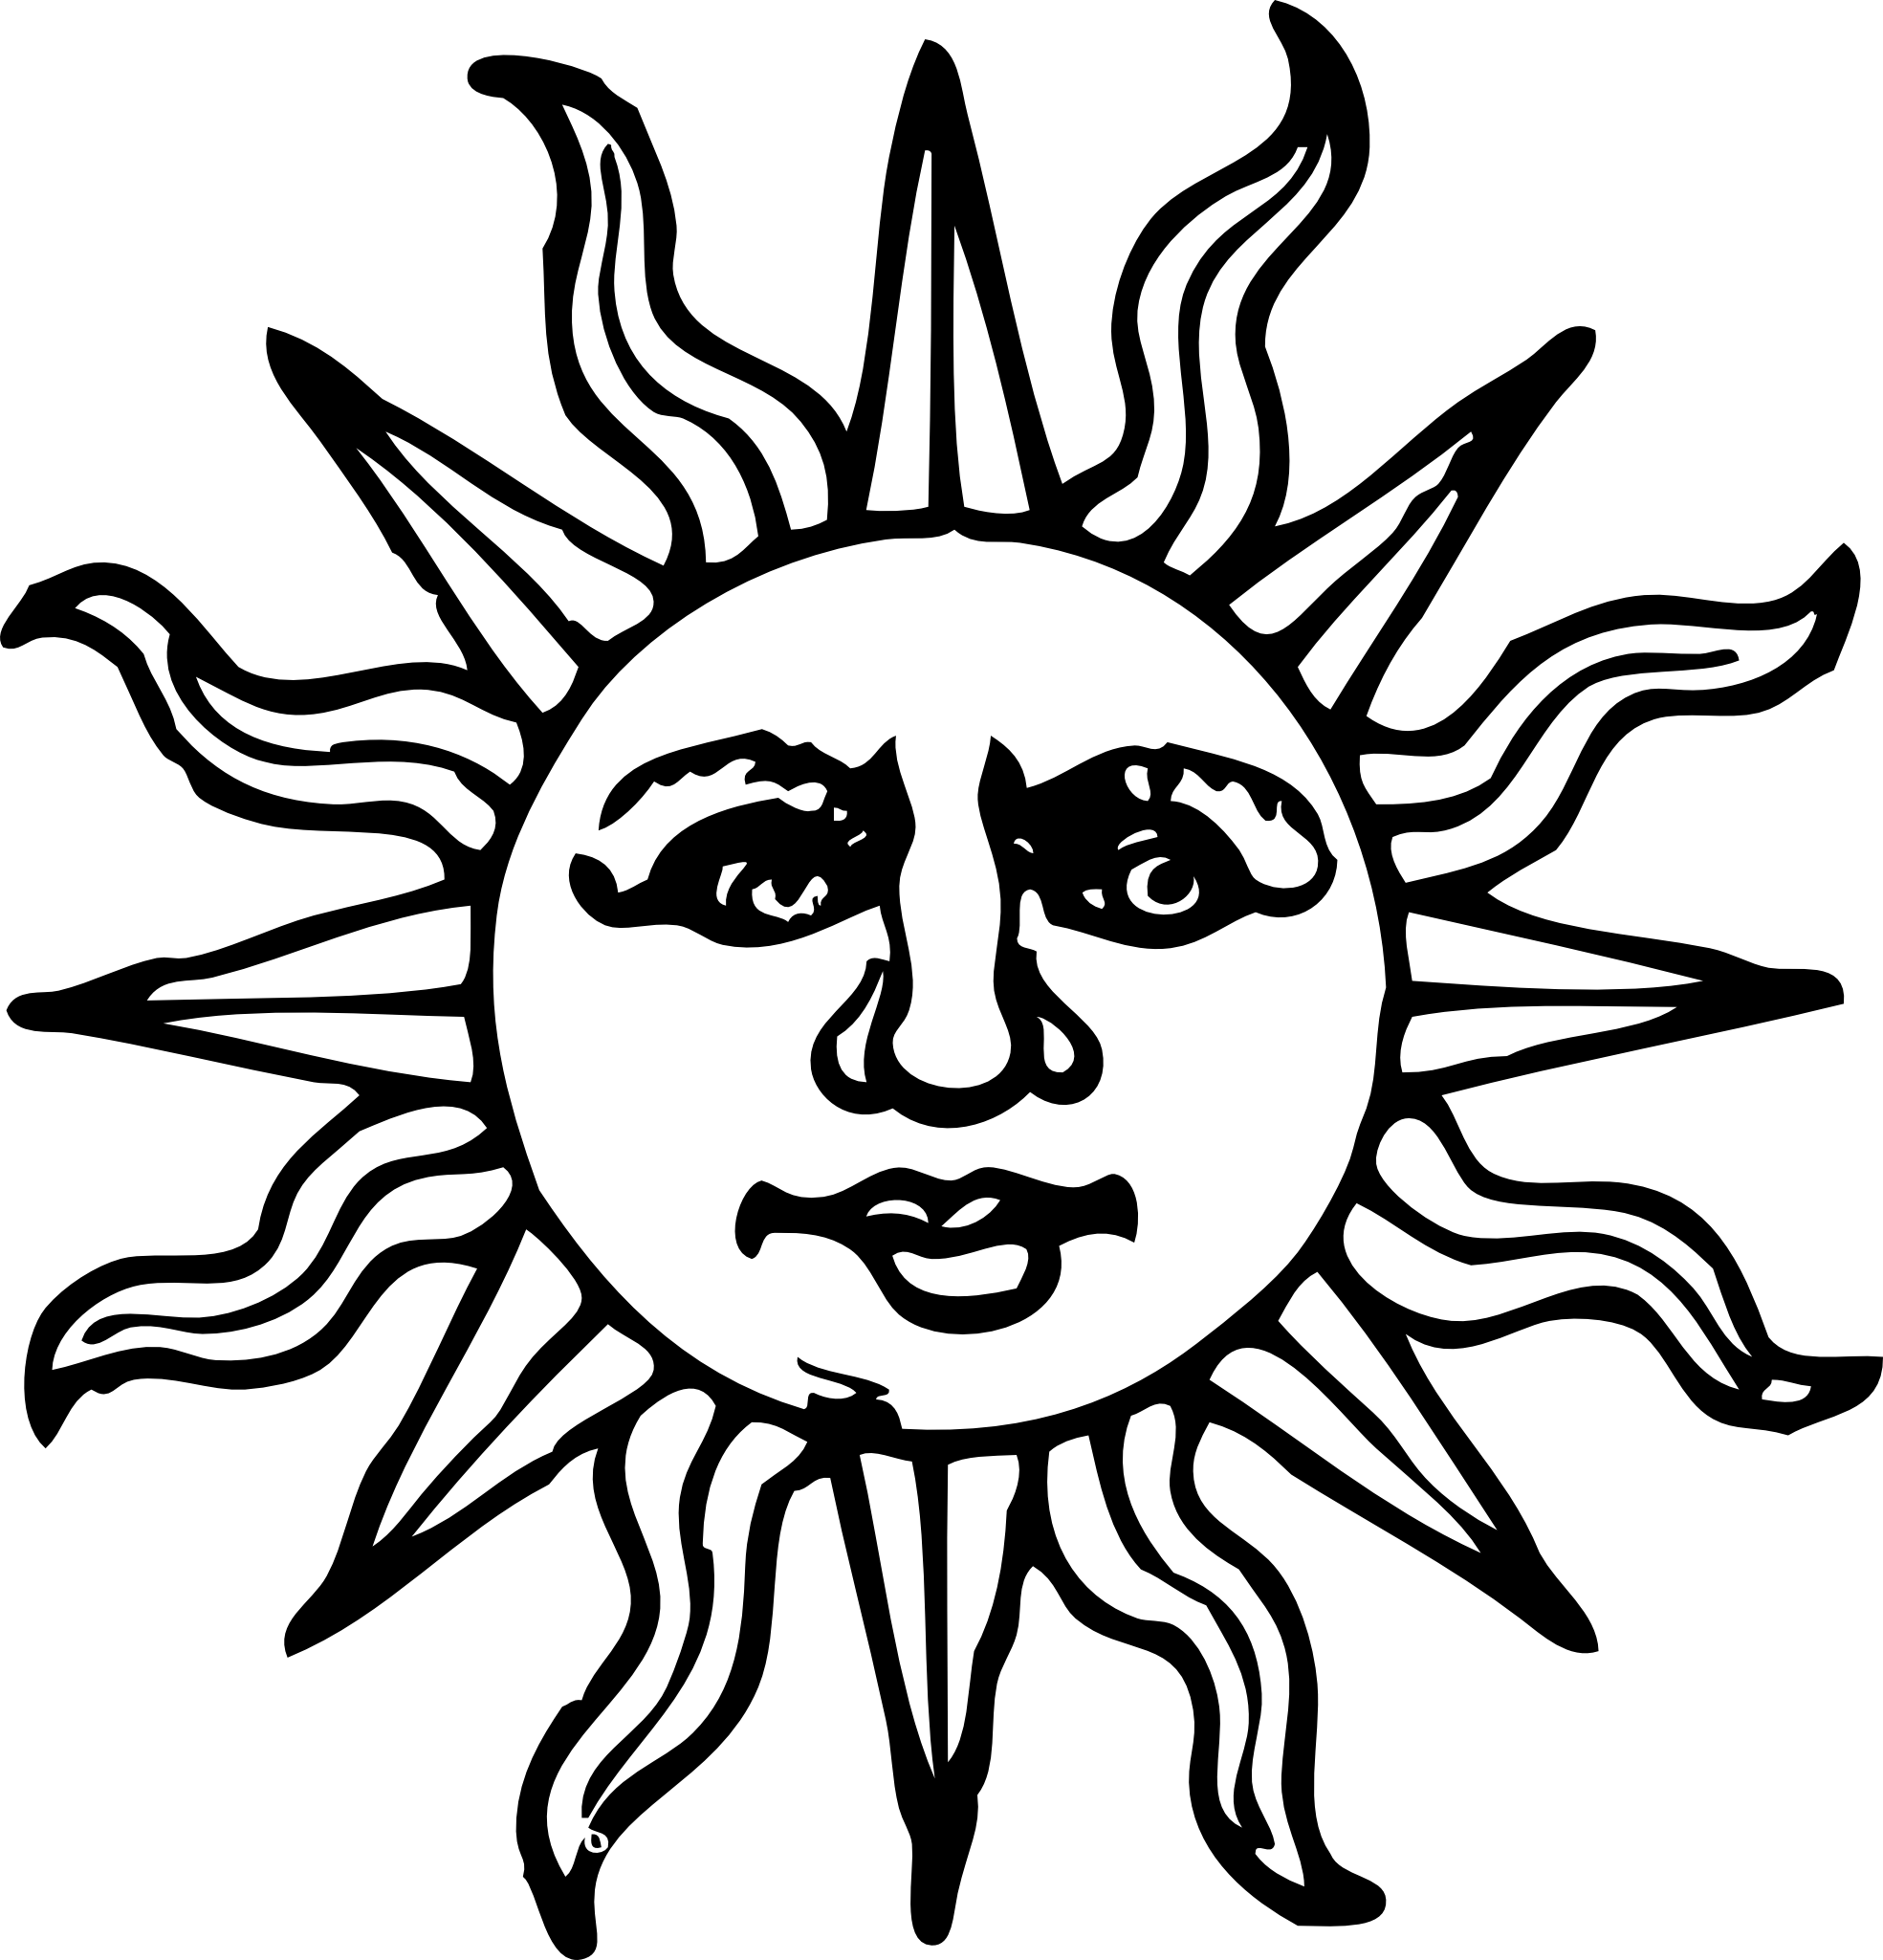 Black and white summer clipart sun jpg freeuse download Sun Drawing Black And White at GetDrawings.com | Free for personal ... jpg freeuse download